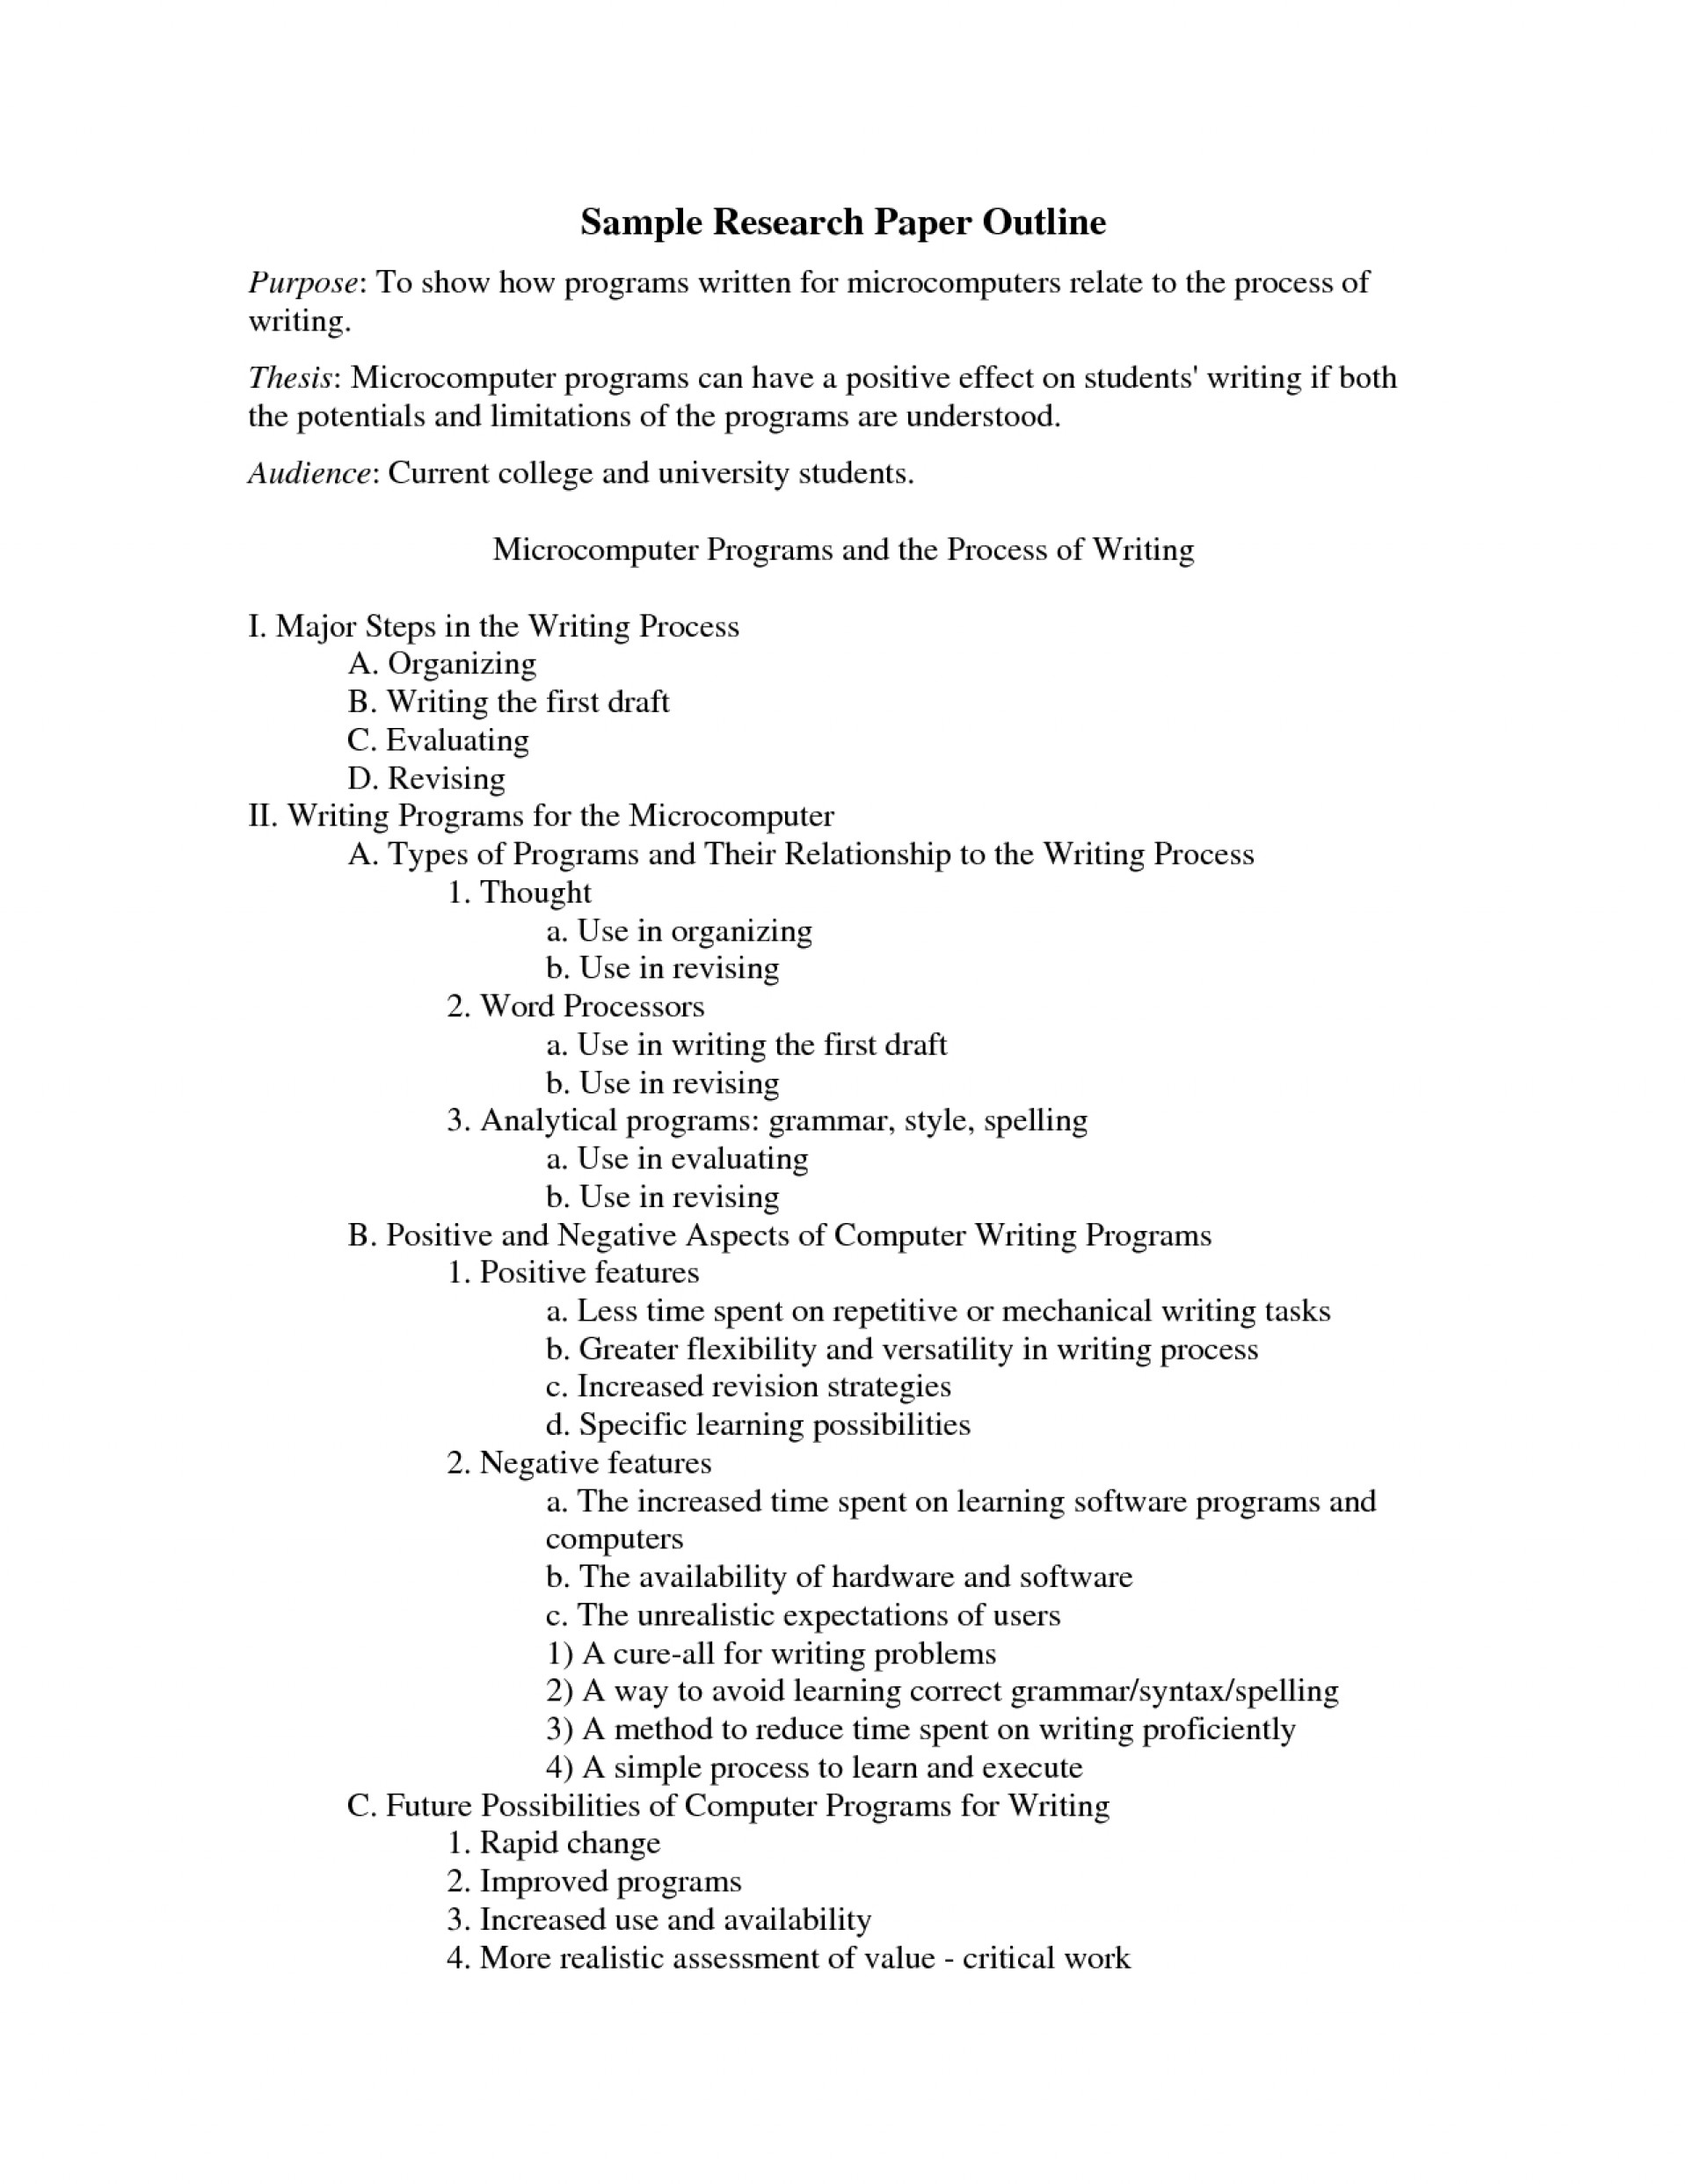 008 Research Paper Example Of Good Outline College Format Gosu Talentrank Co With Regard To Unique A Apa History 1920